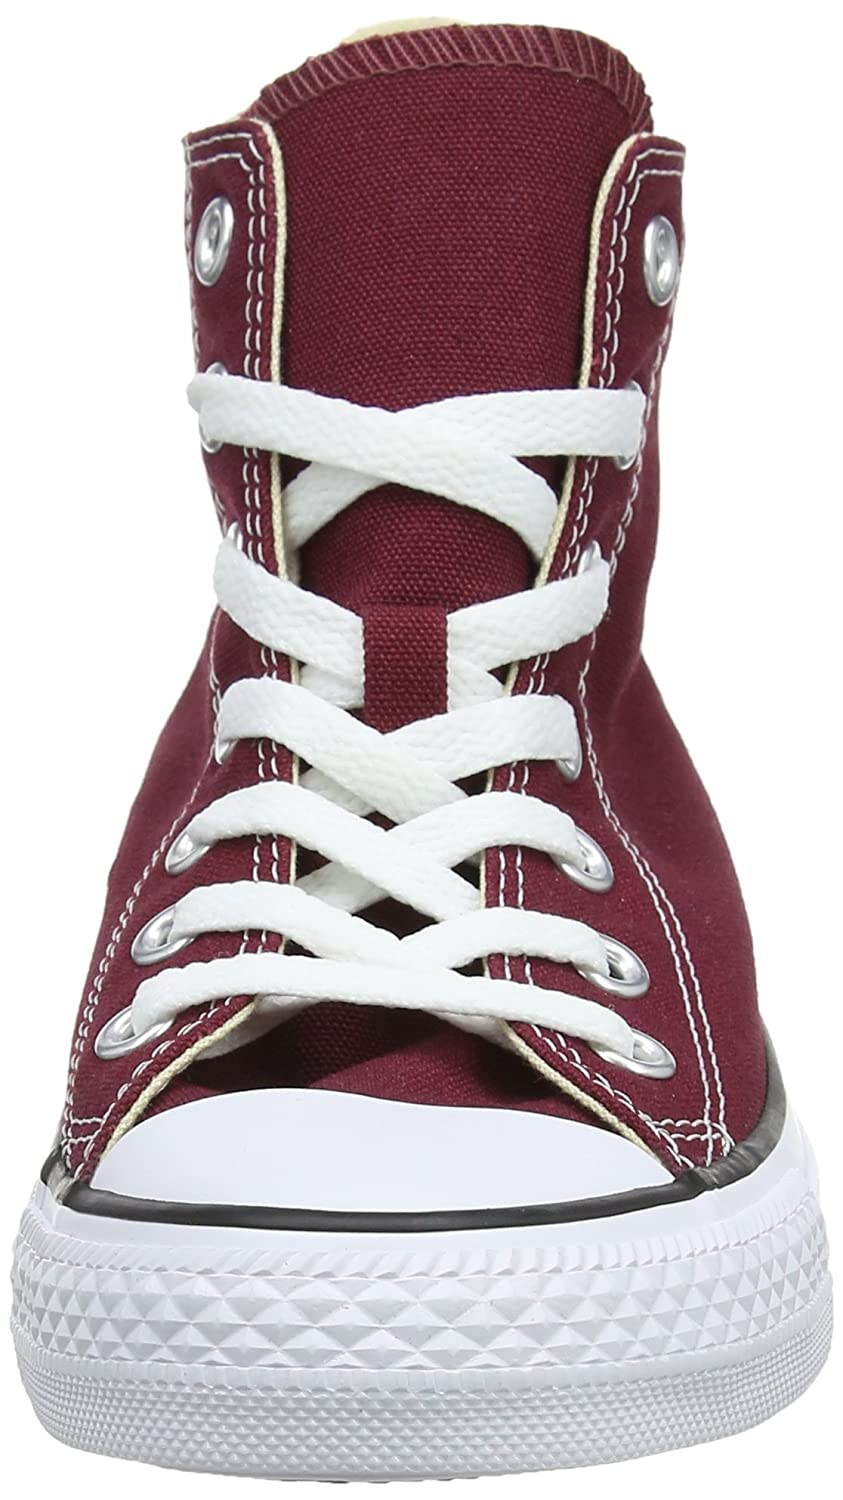 Converse Unisex Chuck Taylor All-Star High-Top Casual Sneakers in Classic Style and Color and Durable Canvas Uppers B002T9VKIG 13 D(M) US |Maroon